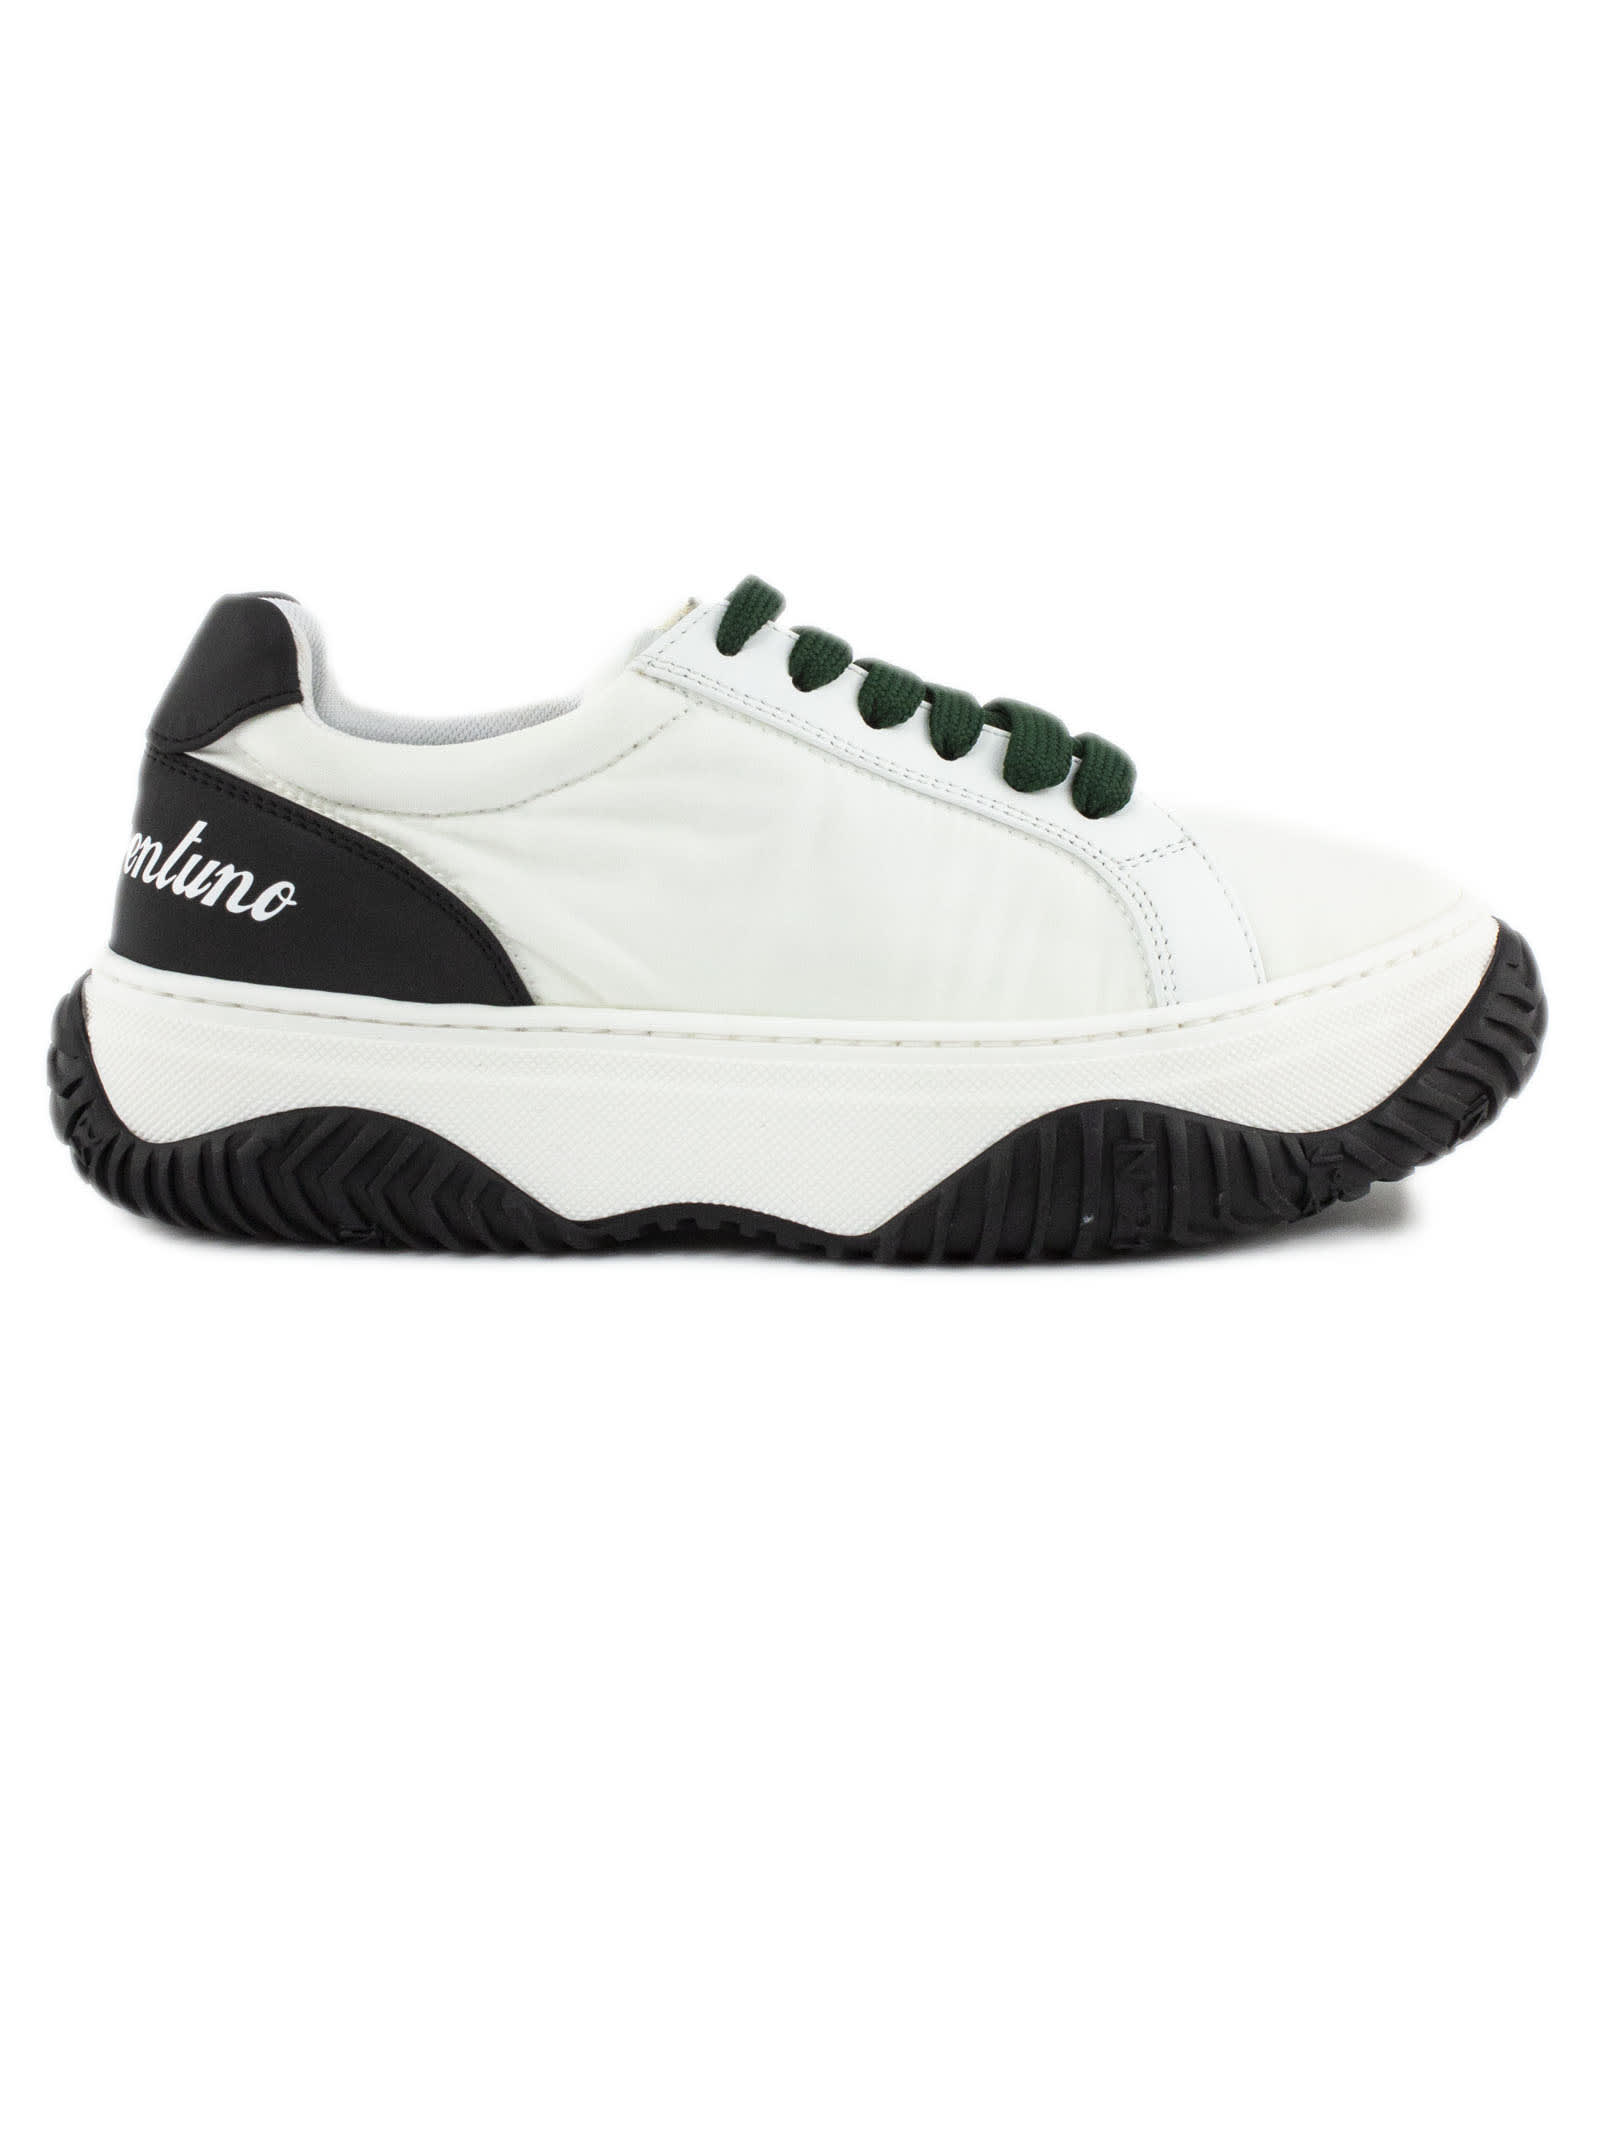 Buy N.21 White Bonnie Sneakers online, shop N.21 shoes with free shipping